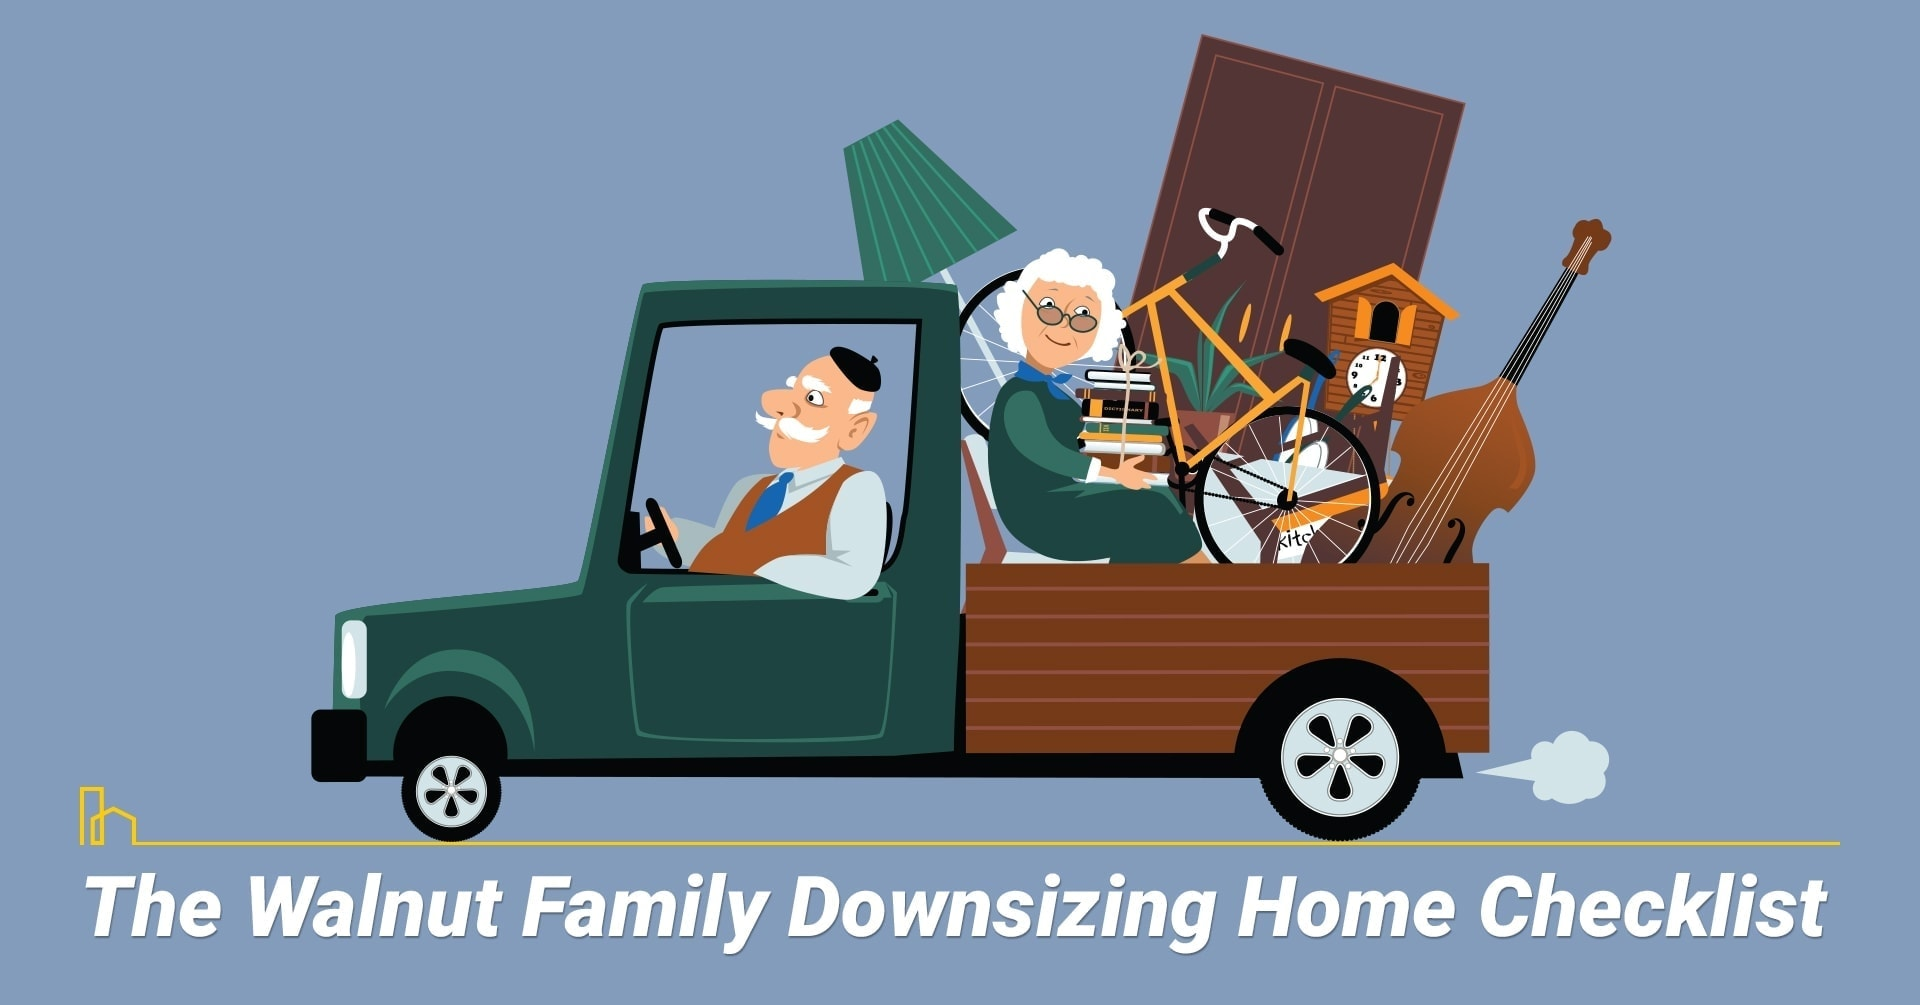 The Walnut Family Downsizing Home Checklist, things to do when downsizing